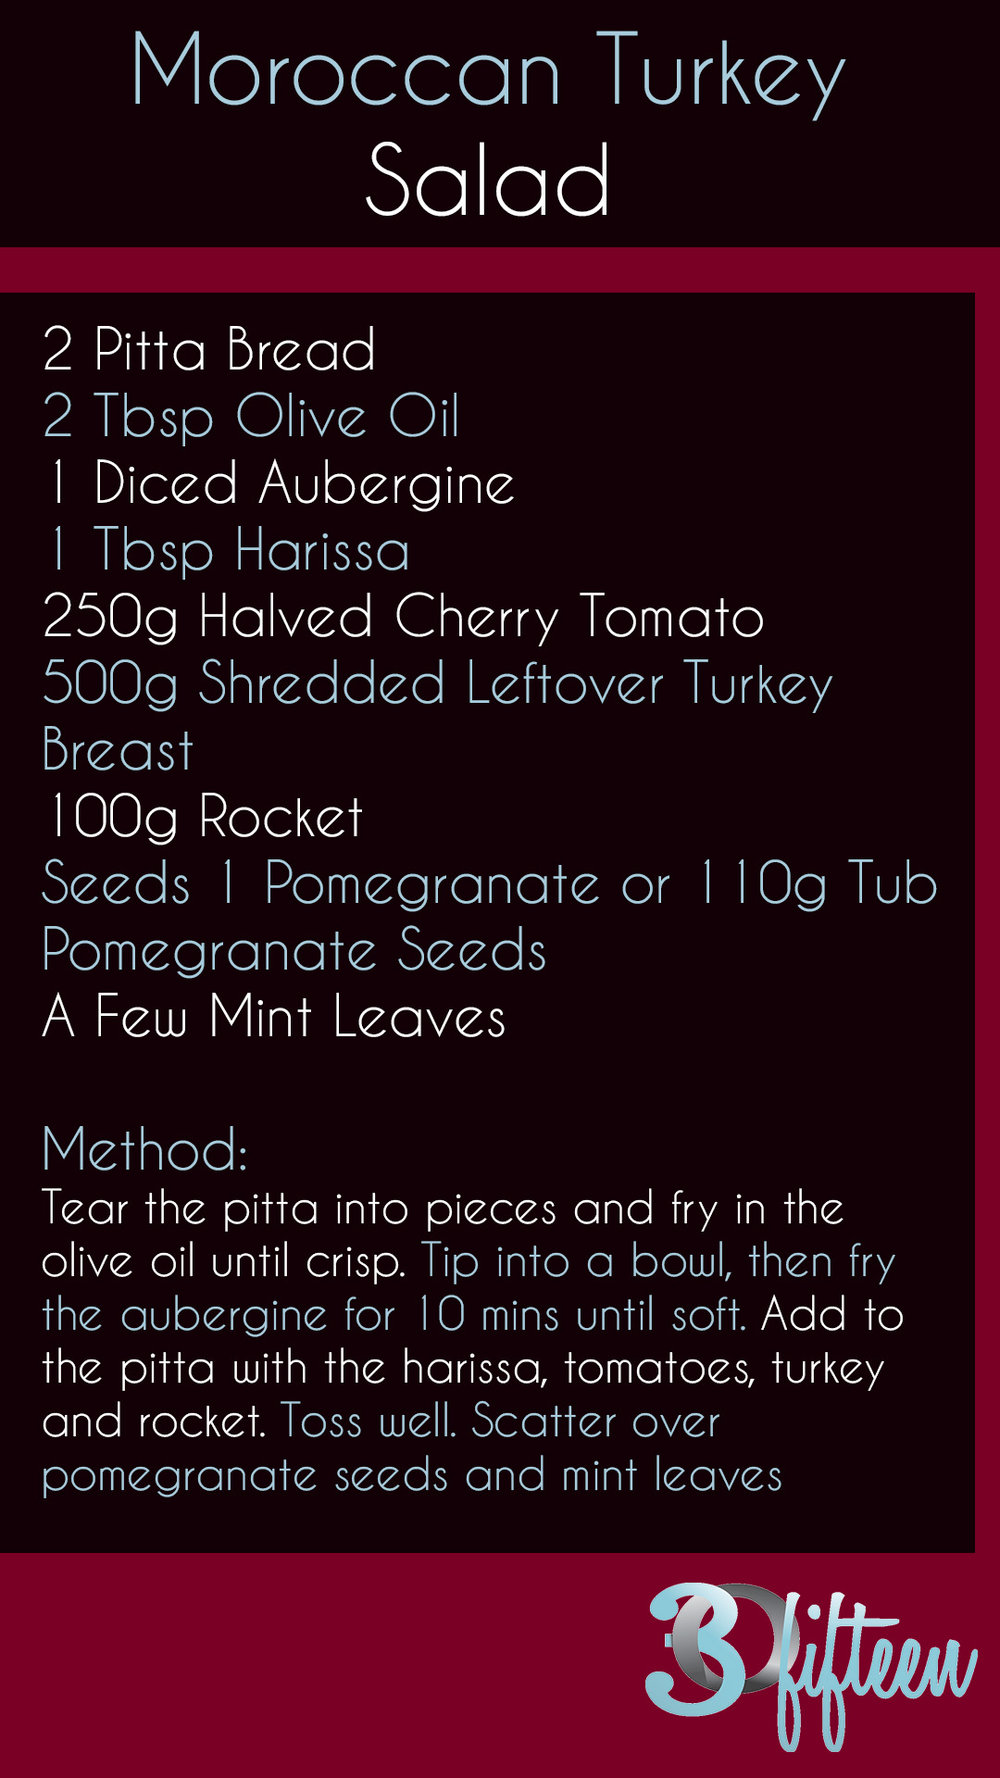 Moroccan Turkey Salad Recipe